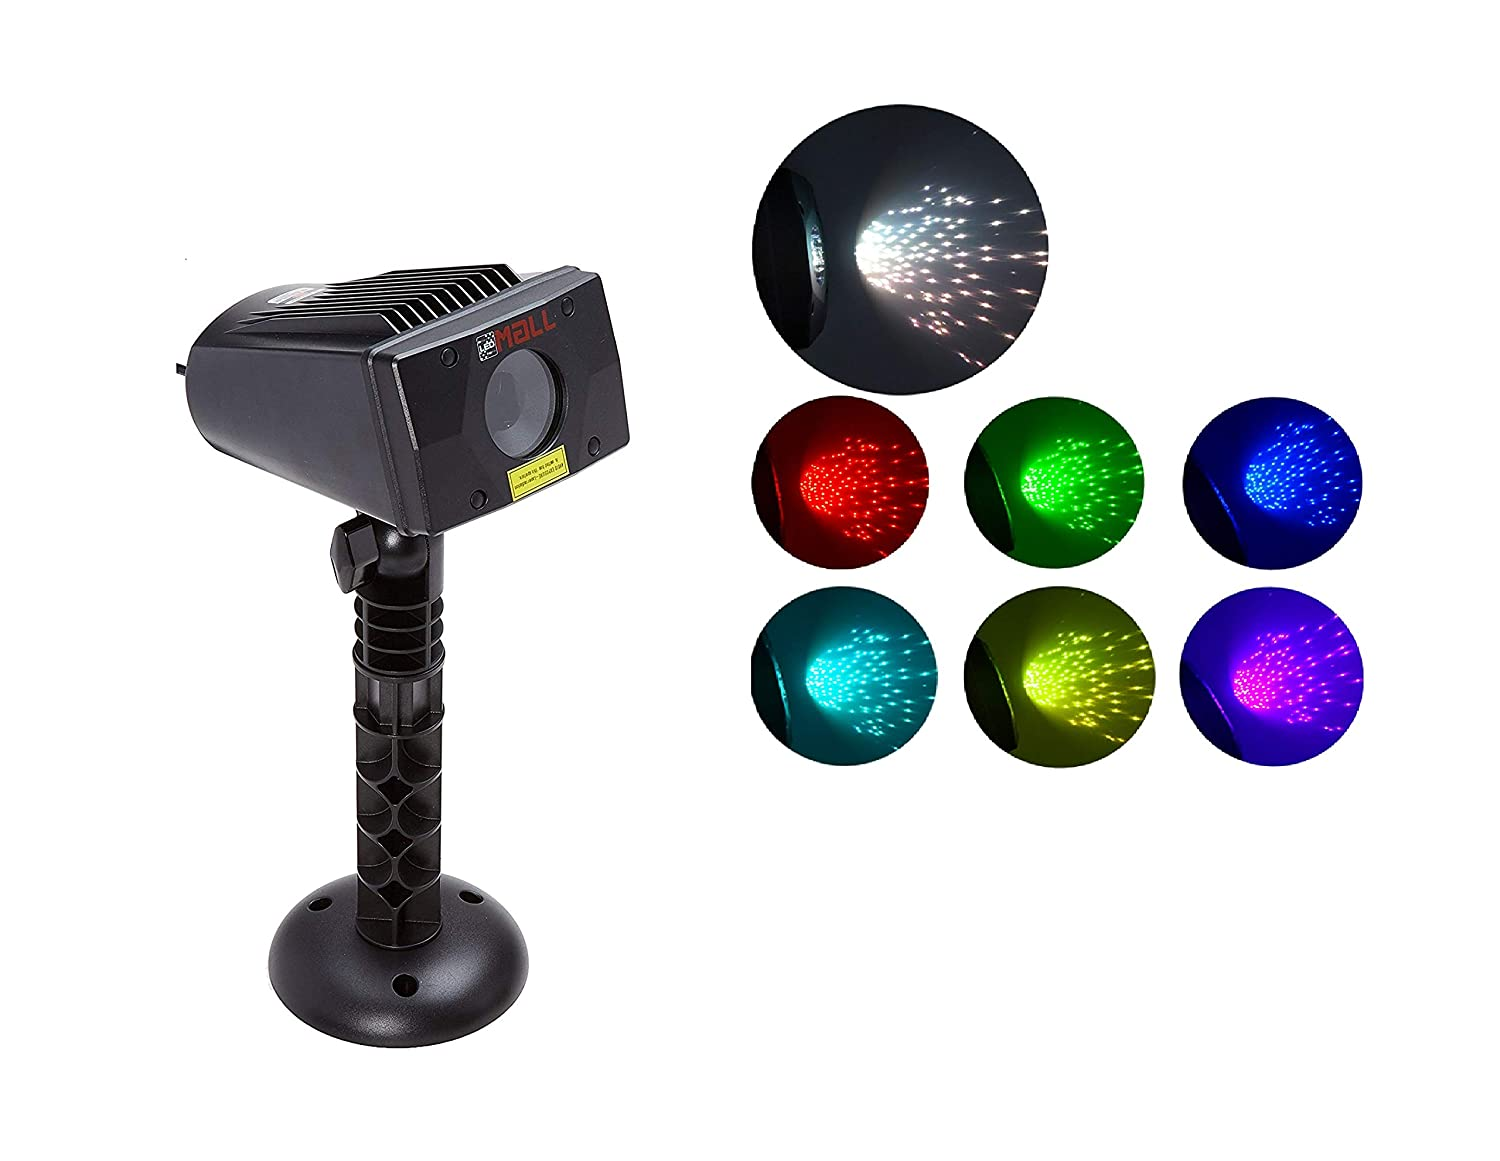 LedMAll® Full Spectrum Motion Star Effects 7 Color with White Laser Christmas Lights, and White Laser Decorative Lights with Remote Control